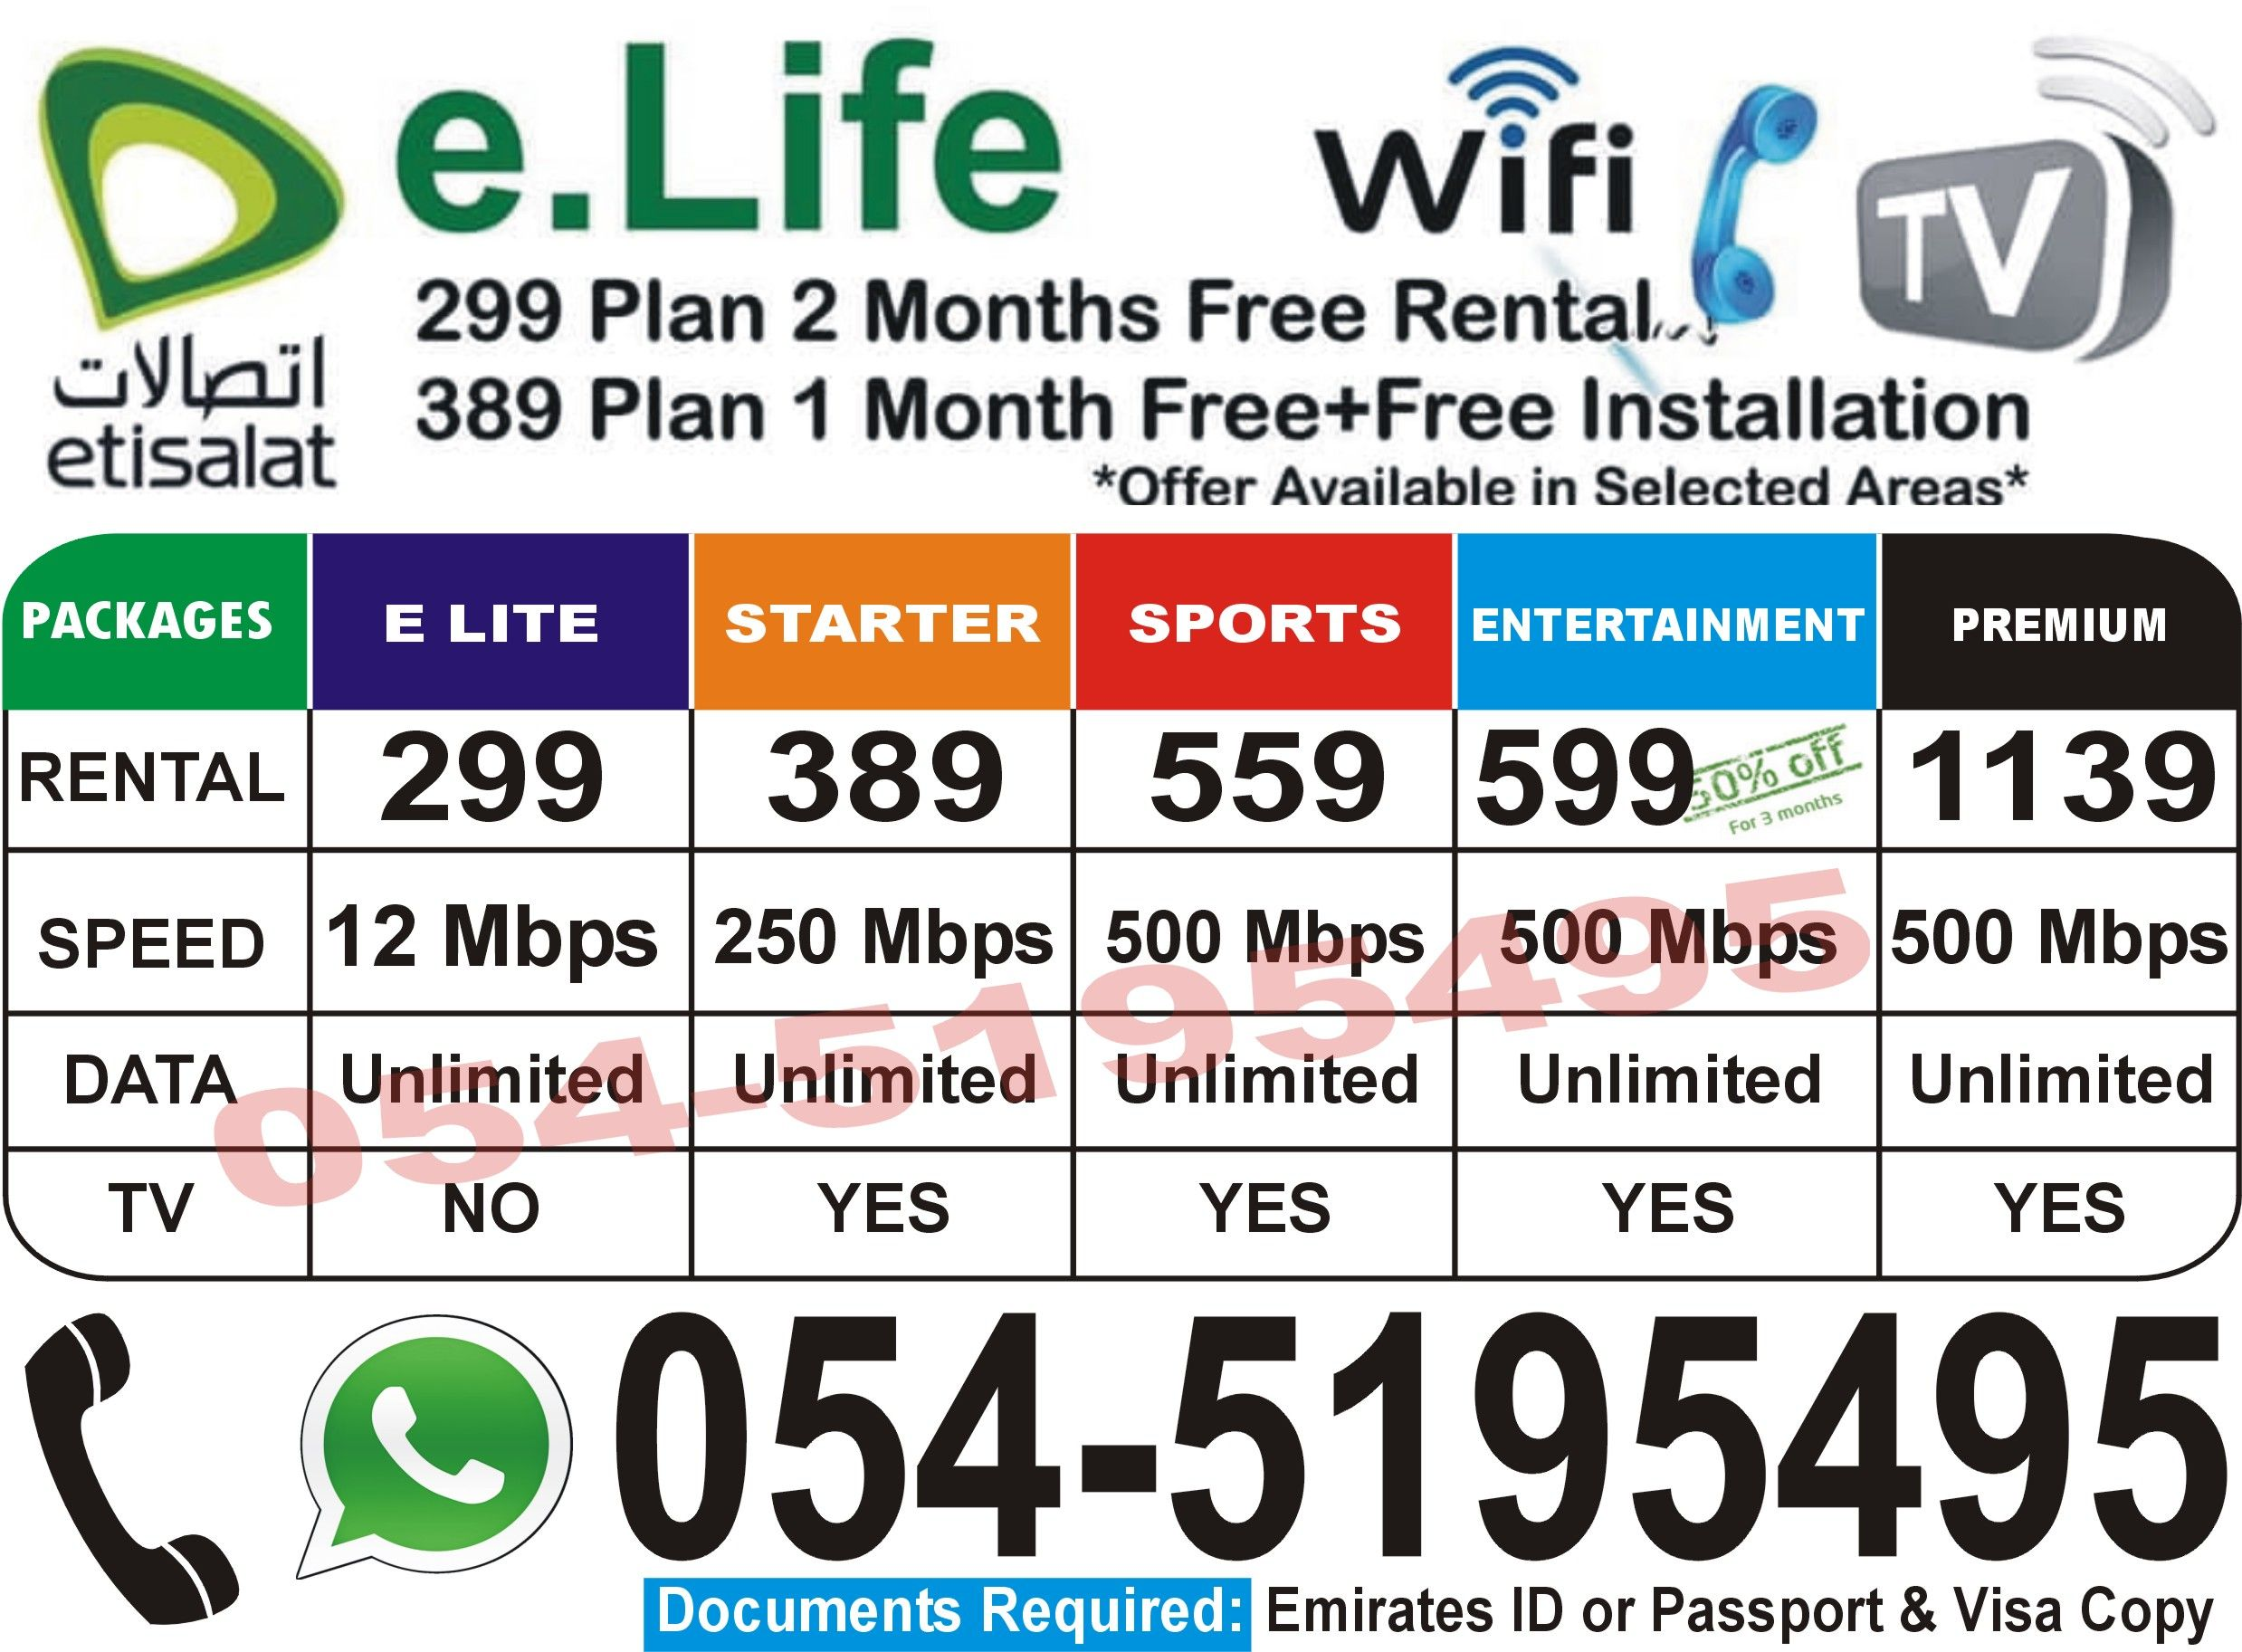 Etisalat Elife Home Internet Service Two Month Free Special Discount 24 7 Hours Services Internet Packages Home Internet Wifi Router